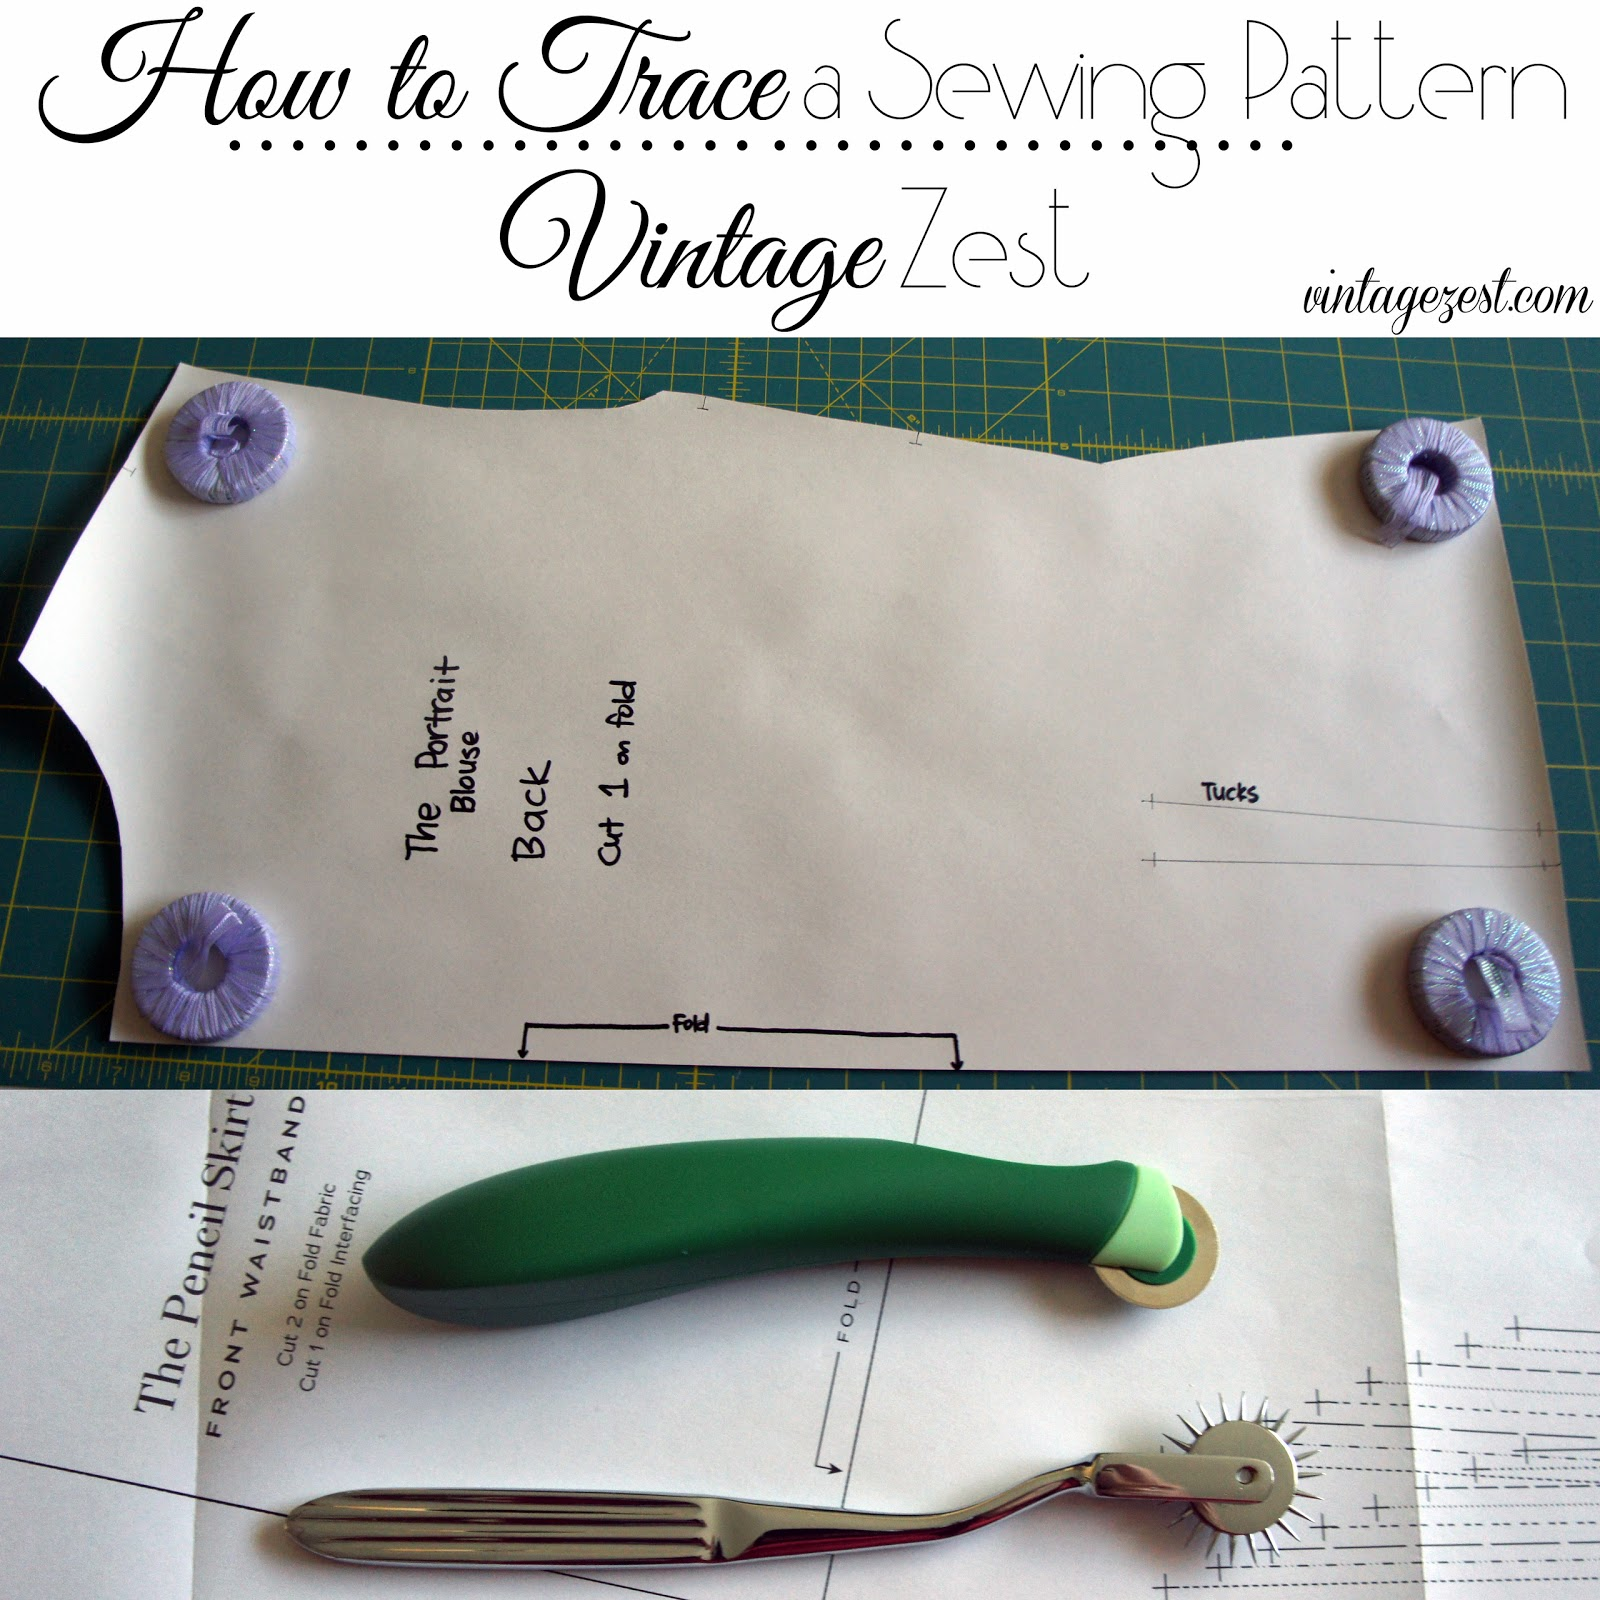 Tutorial: How to Trace a Sewing Pattern on Diane's Vintage Zest!